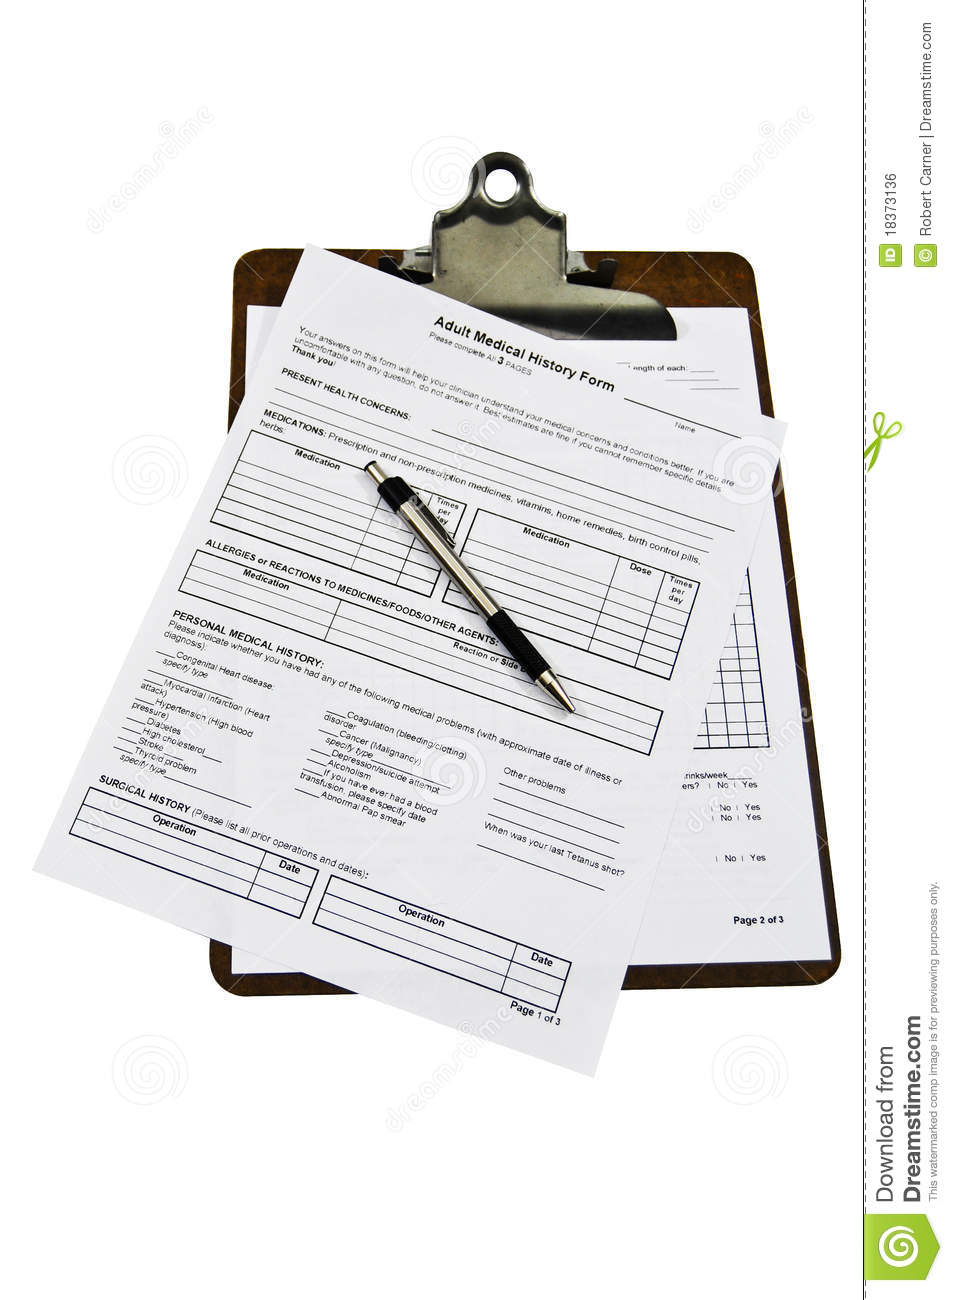 sign in forms for doctors office